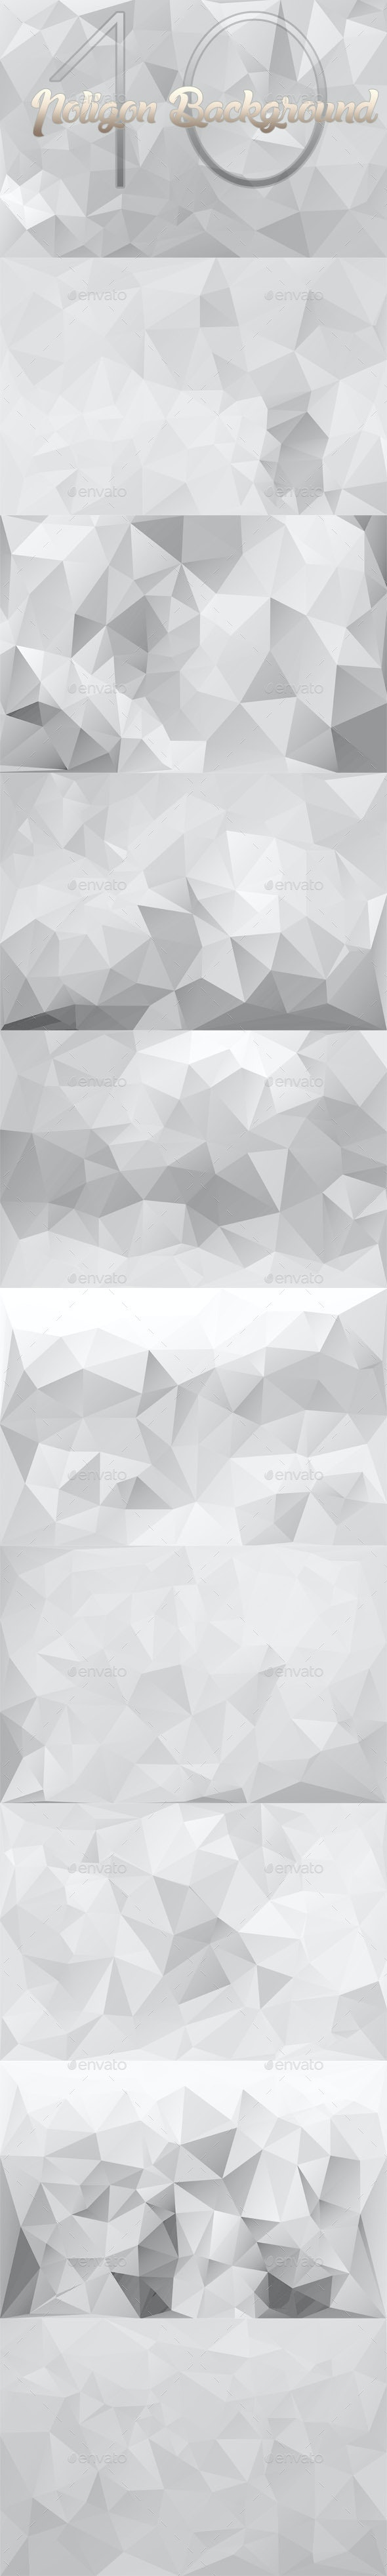 10 Backgrounds Polygon Part 9 - Abstract Backgrounds